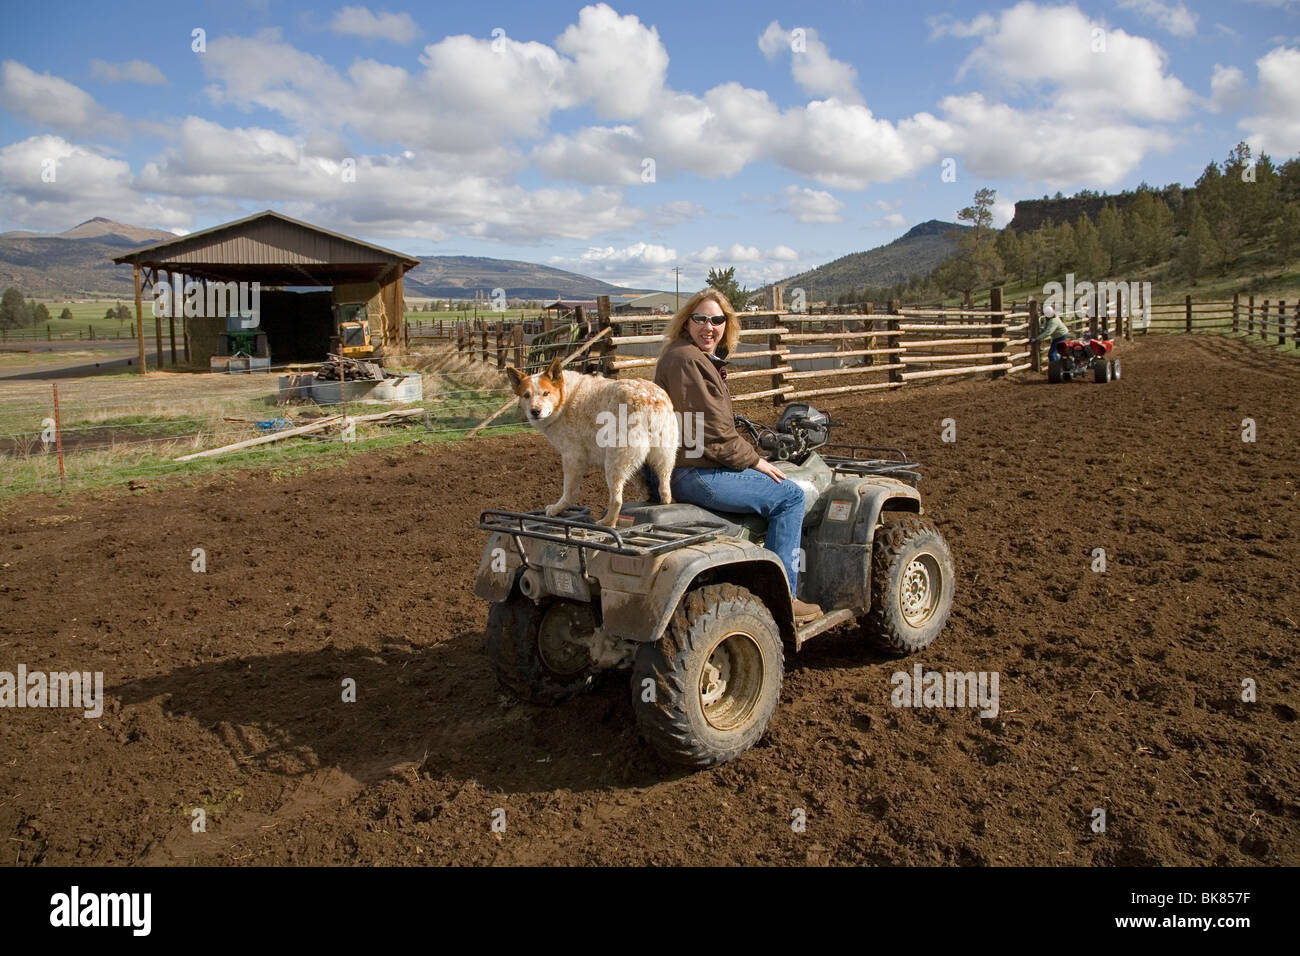 Modern day cowboys ride All Terrain Vehicles to round up cattle on a large cattle ranch in central Oregon - Stock Image